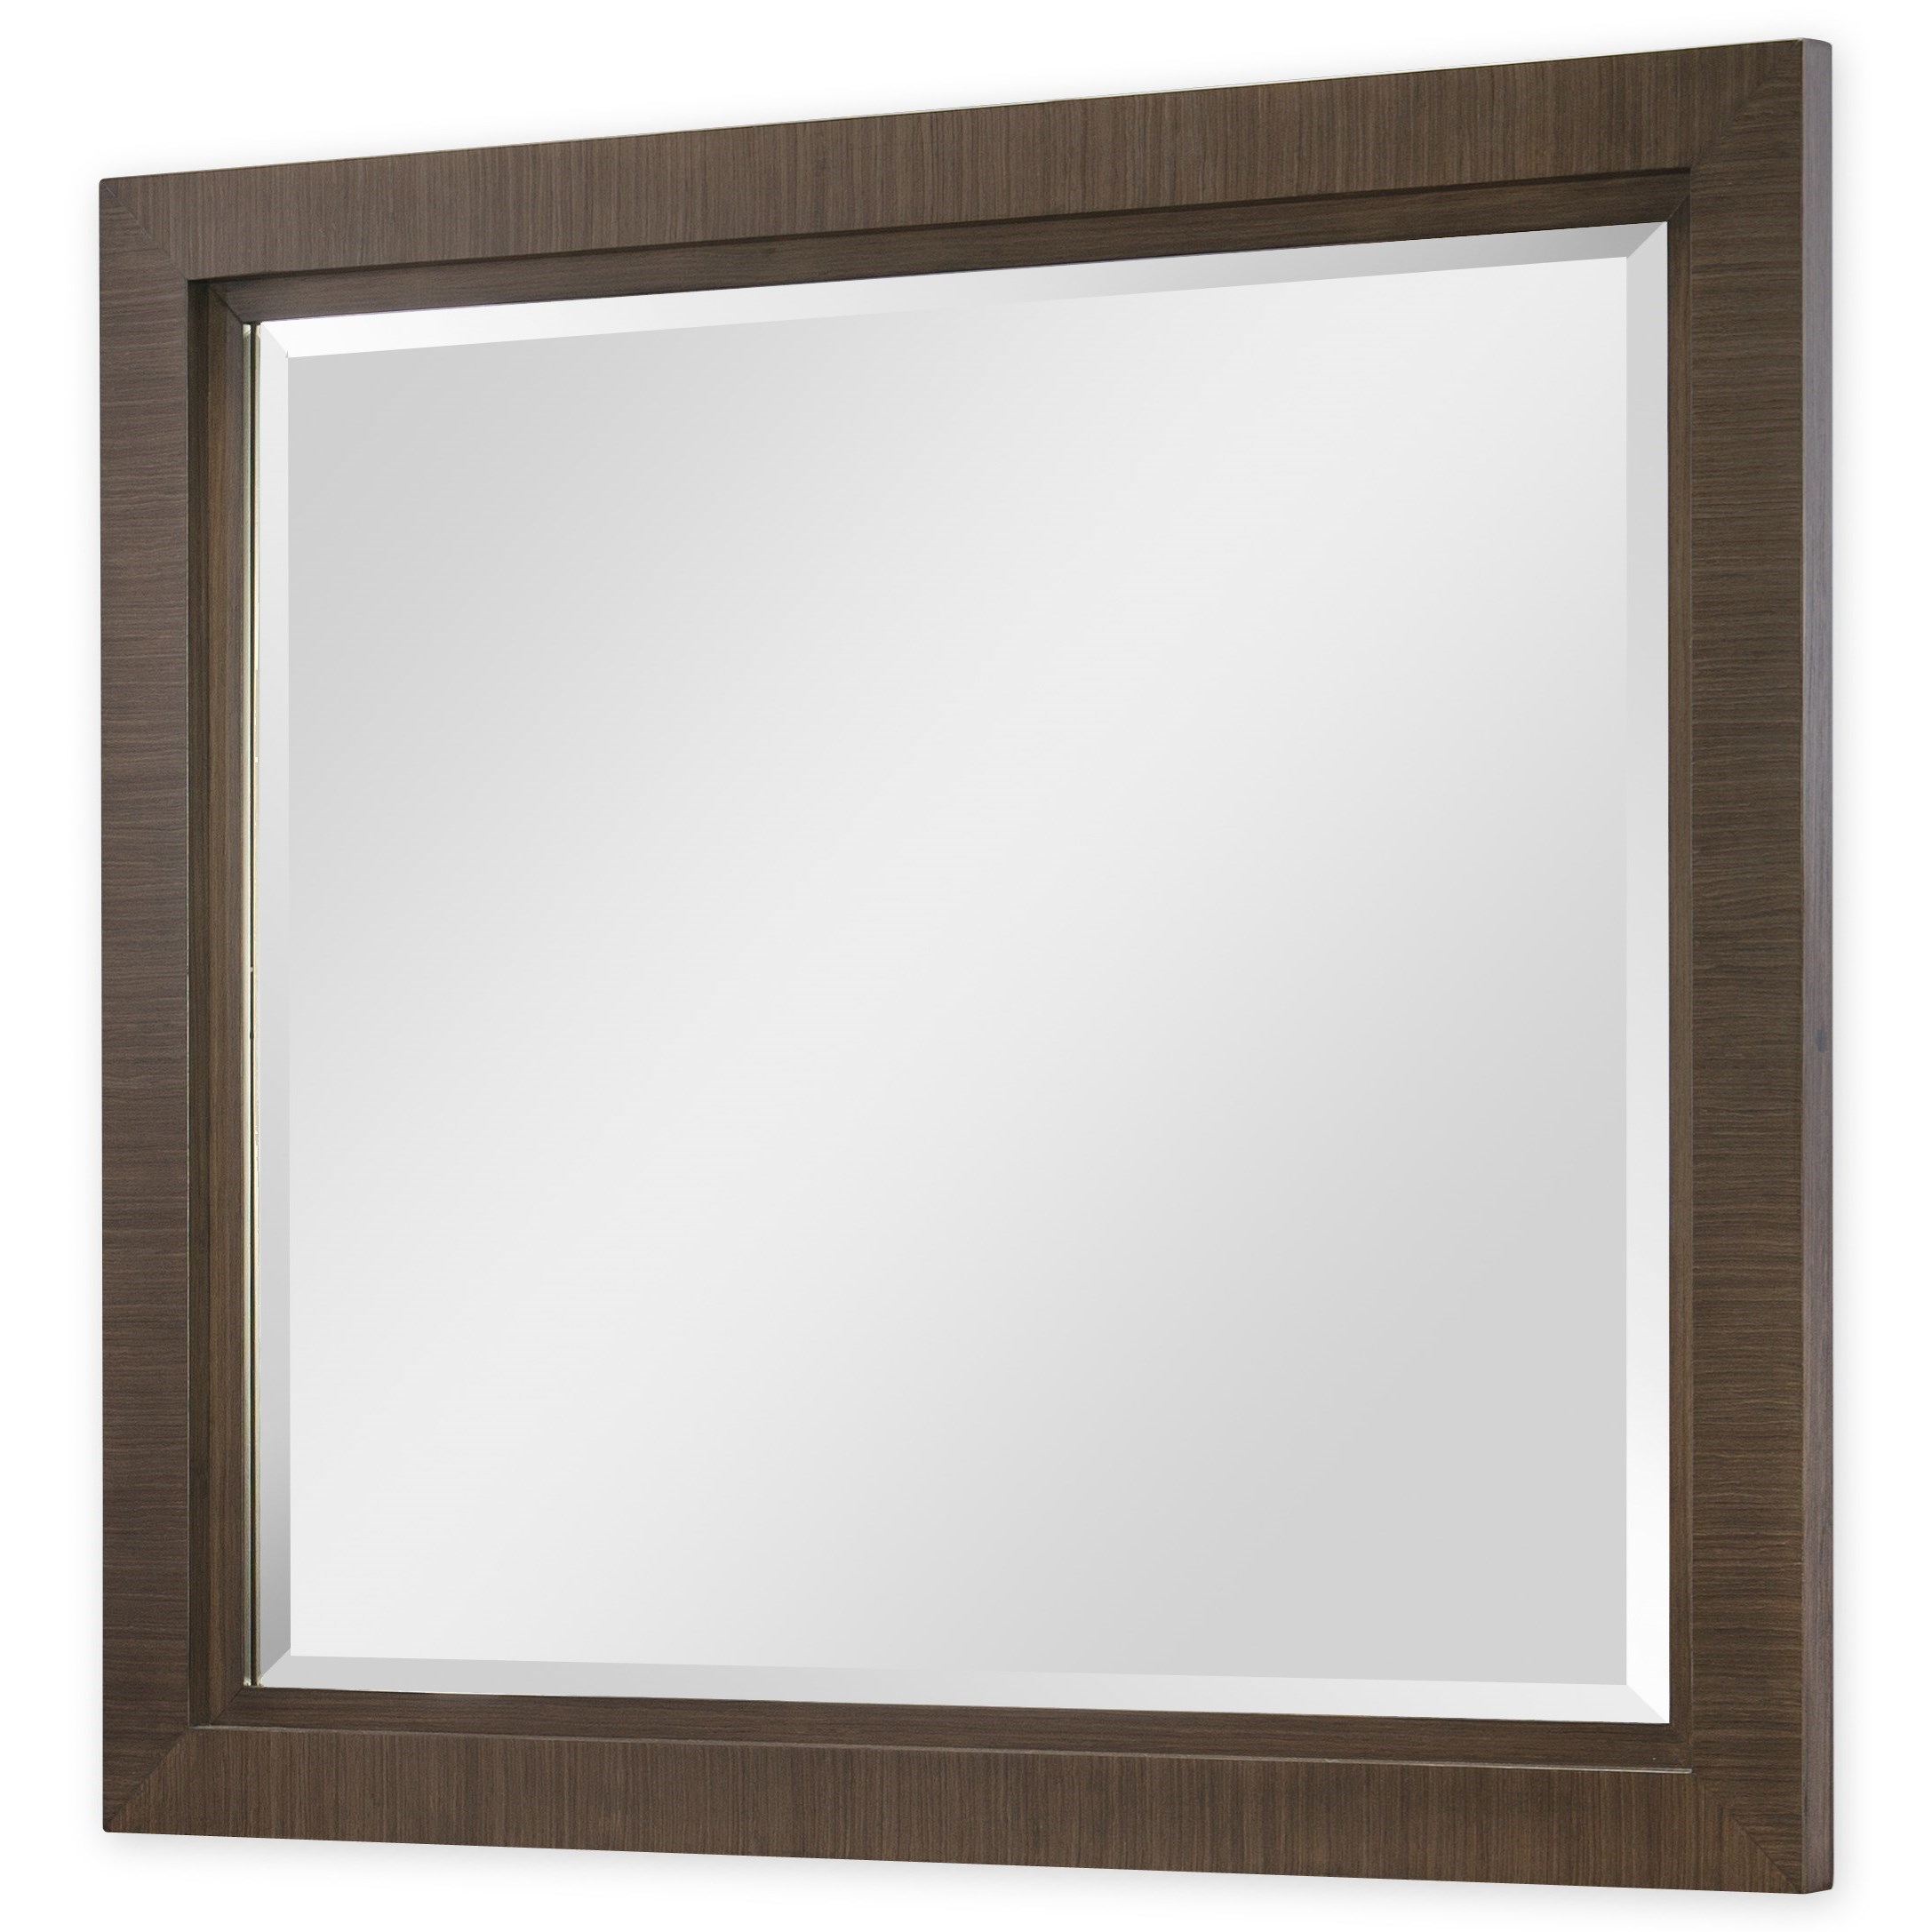 Rachael Ray Home by Legacy Classic Soho Landscape Mirror - Item Number: 6020-0400